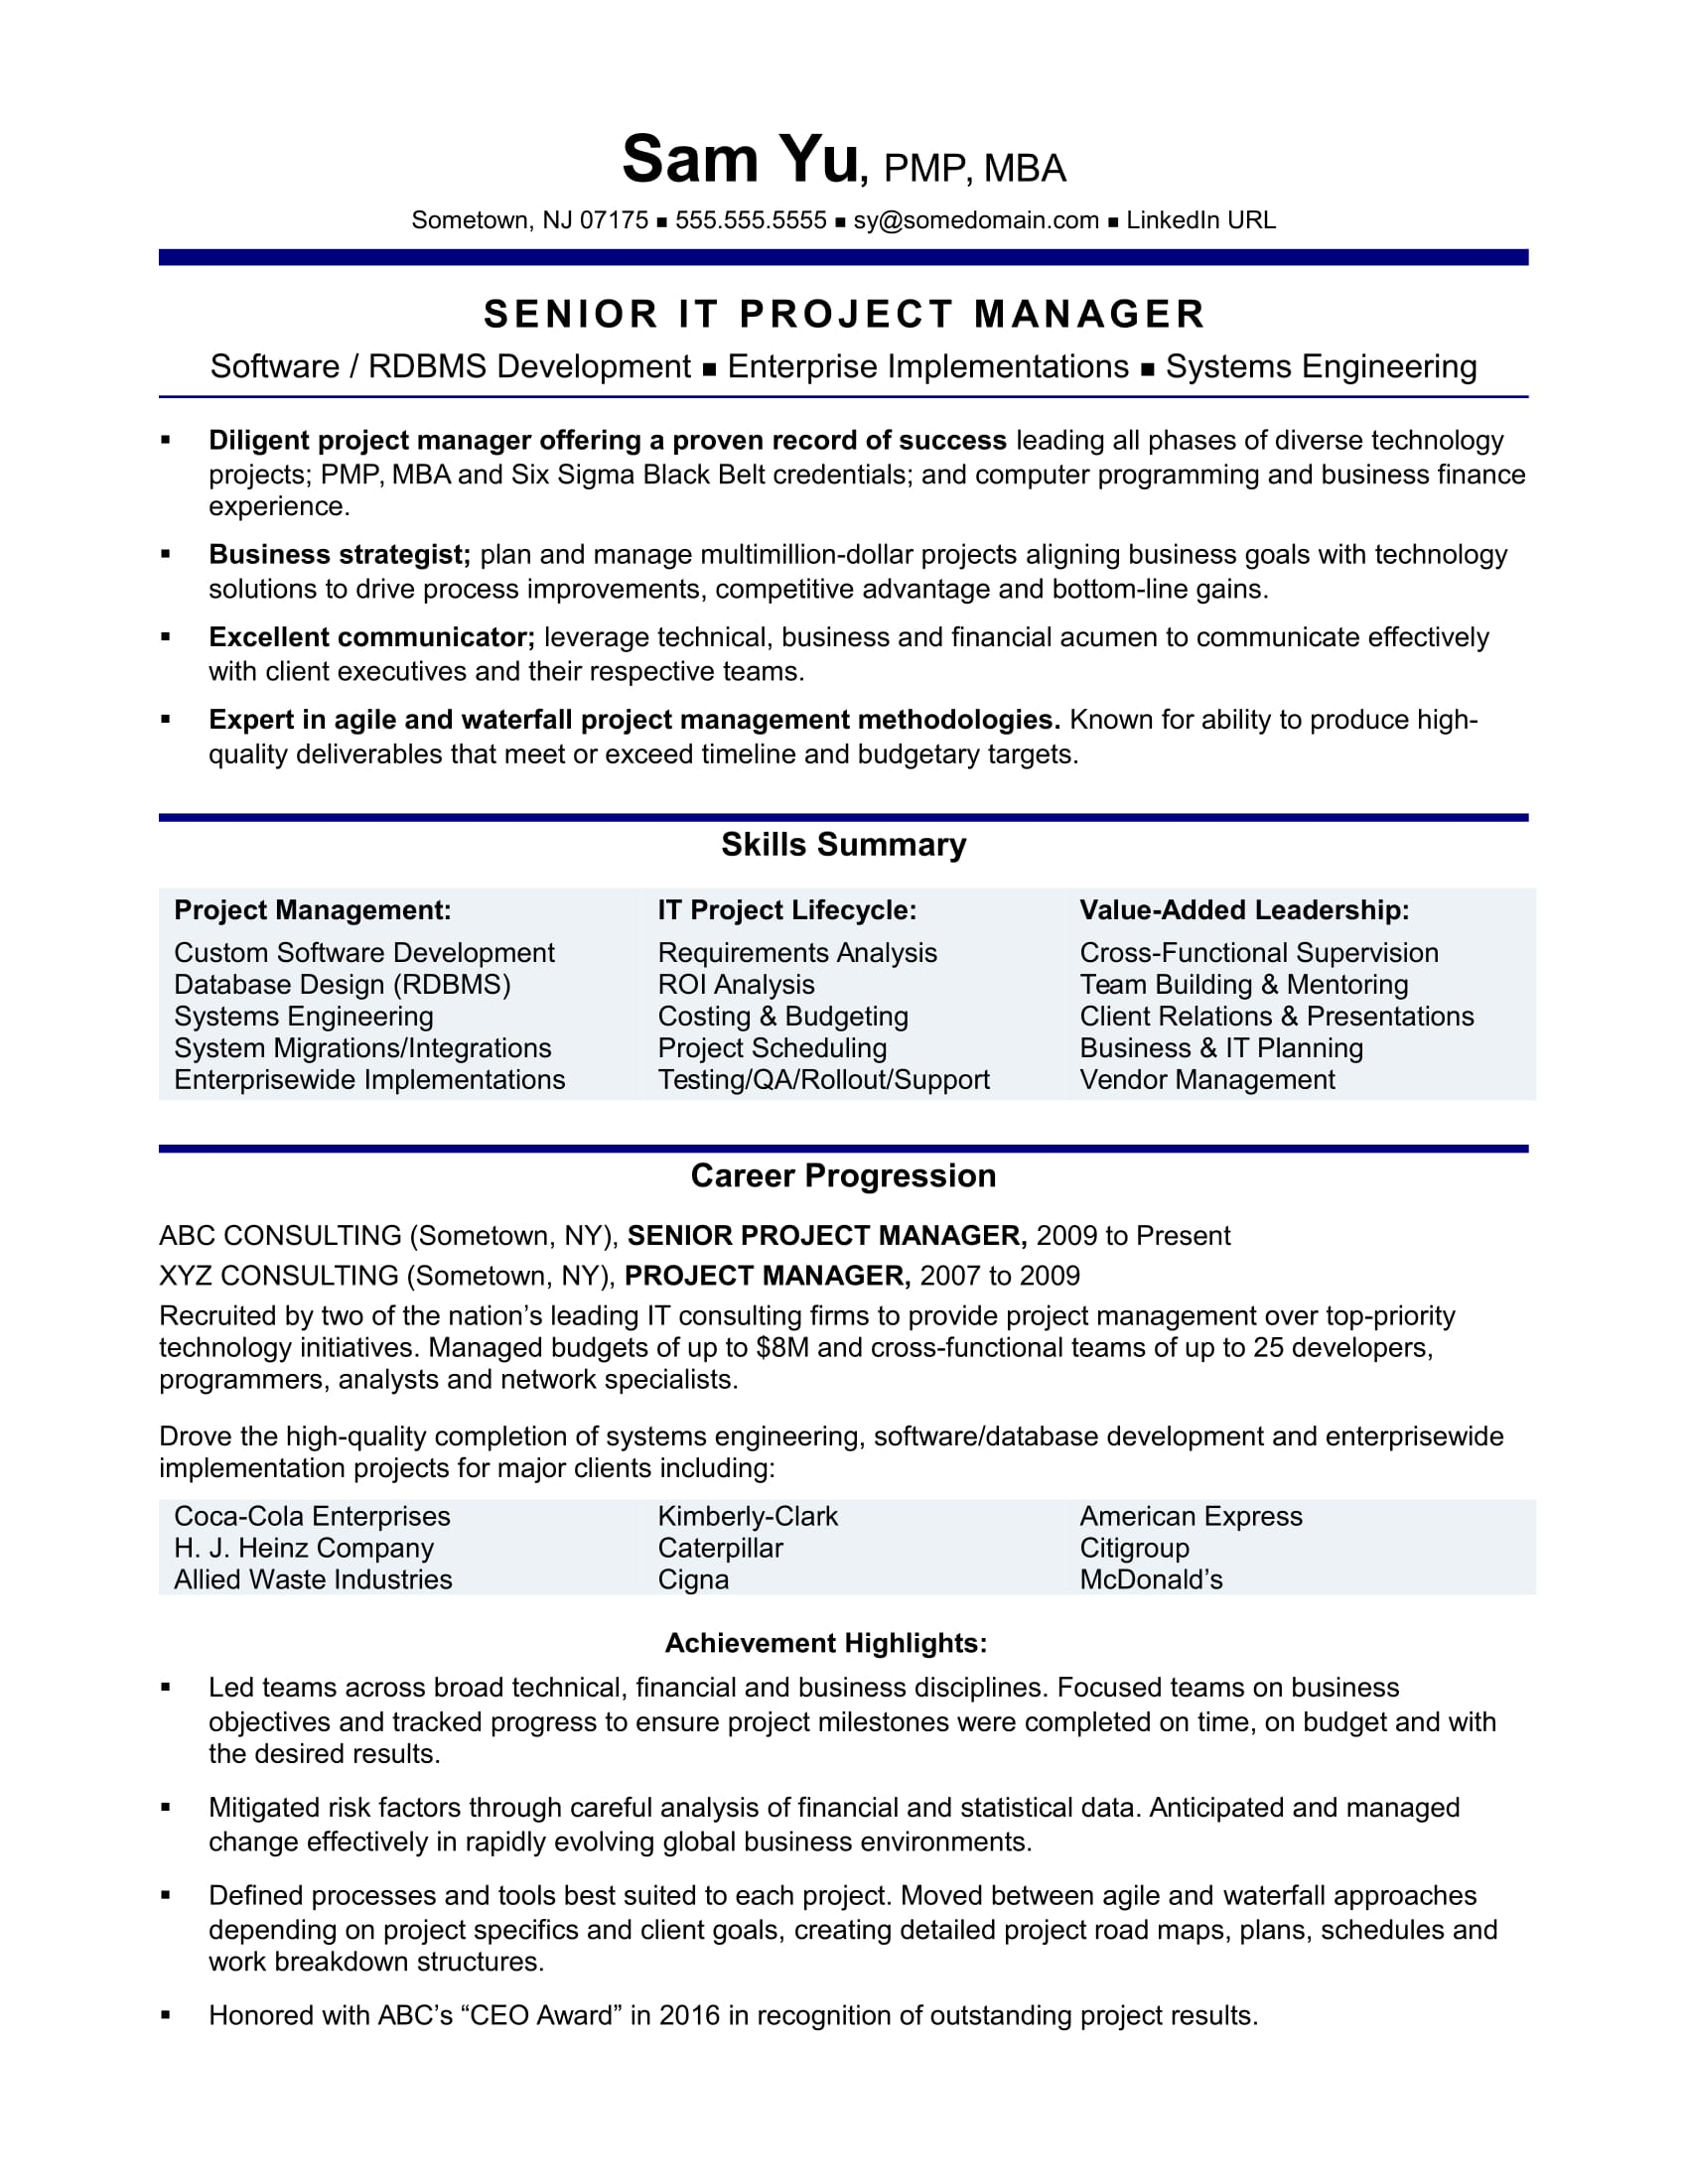 Sample Resume For Office Staff Without Experience Experienced It Project Manager Resume Sample Monster